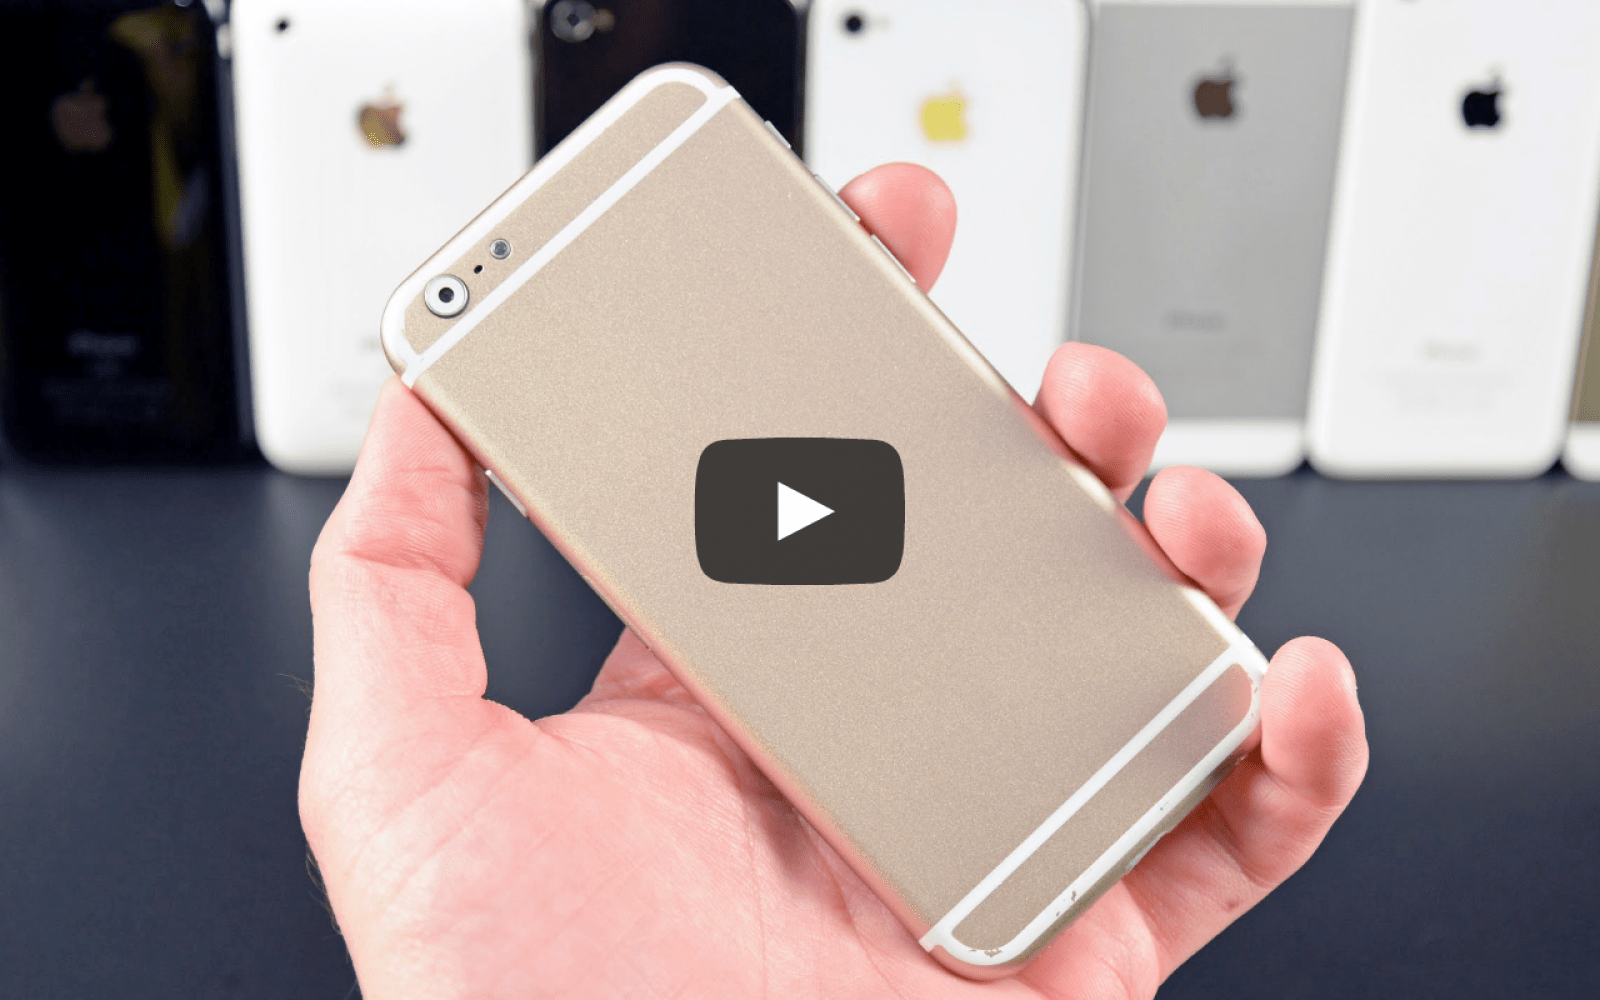 iPhone 6 mockup compared to all previous generation iPhone models (Video)